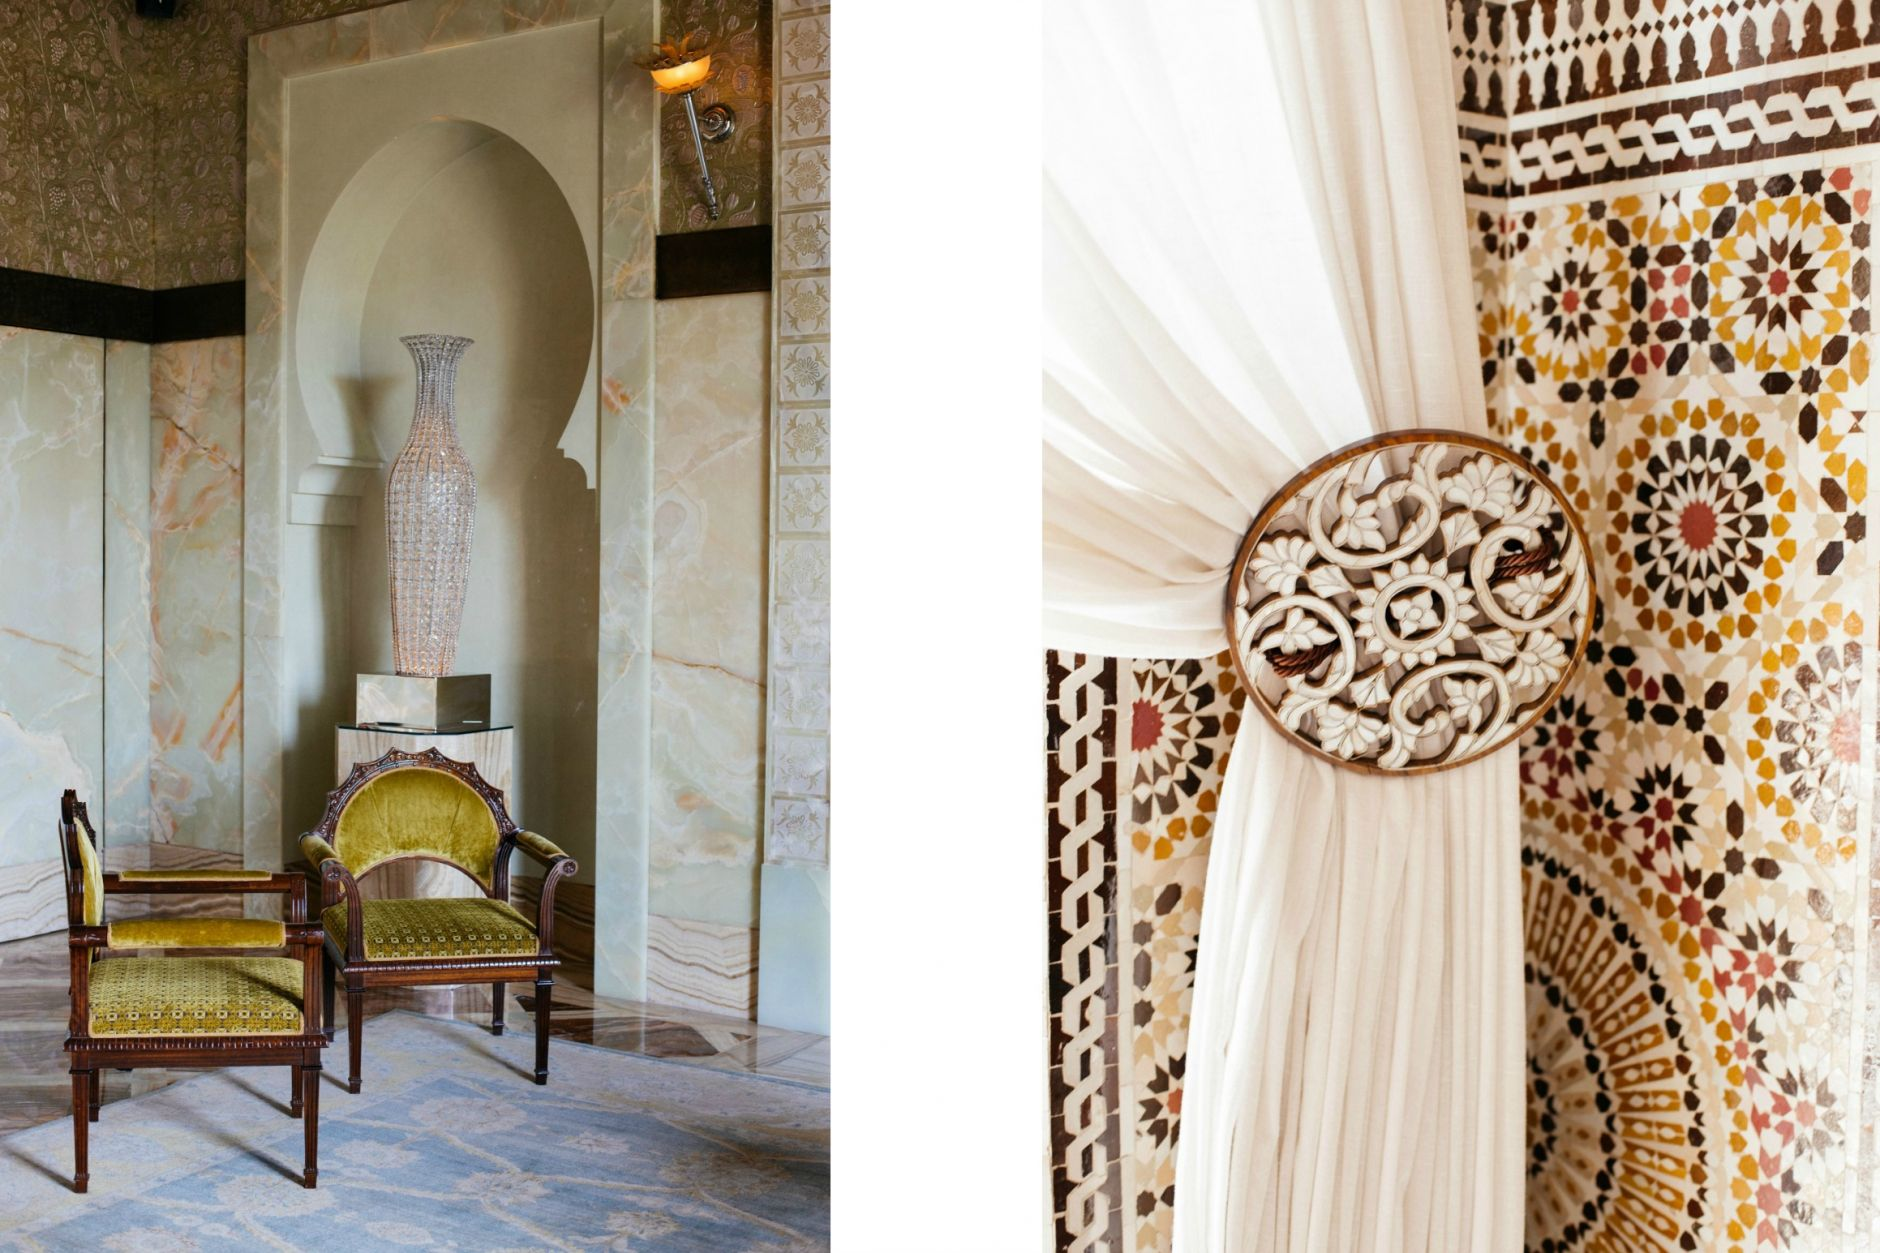 royal-mansour-hotel-luxury-marrakesch-marrakesh-morocco-edisa-shahini-disicouture-blog-duo-09